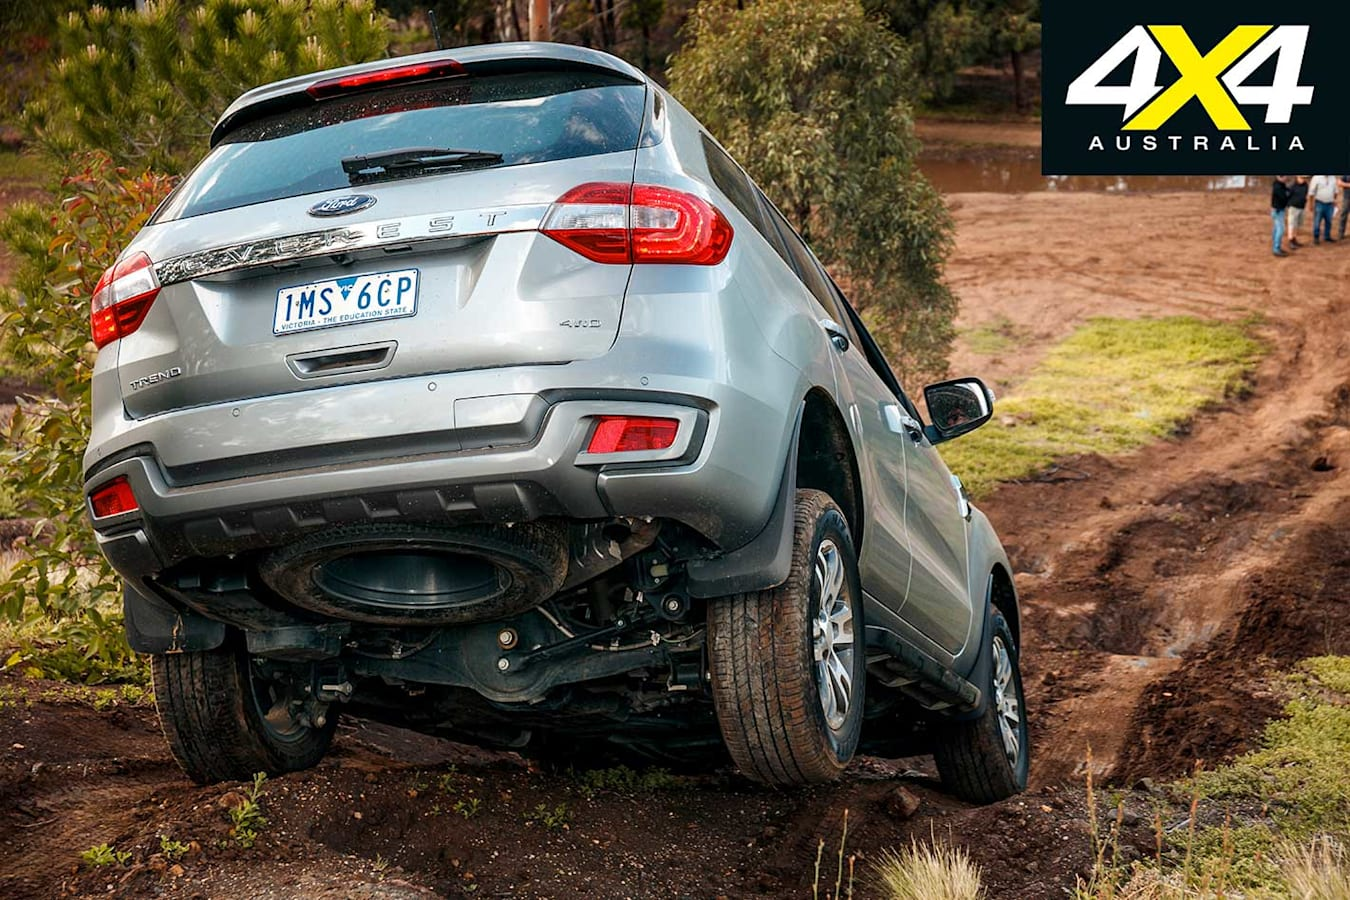 2019 4 X 4 Of The Year Ford Everest Trend Hill Descent Jpg